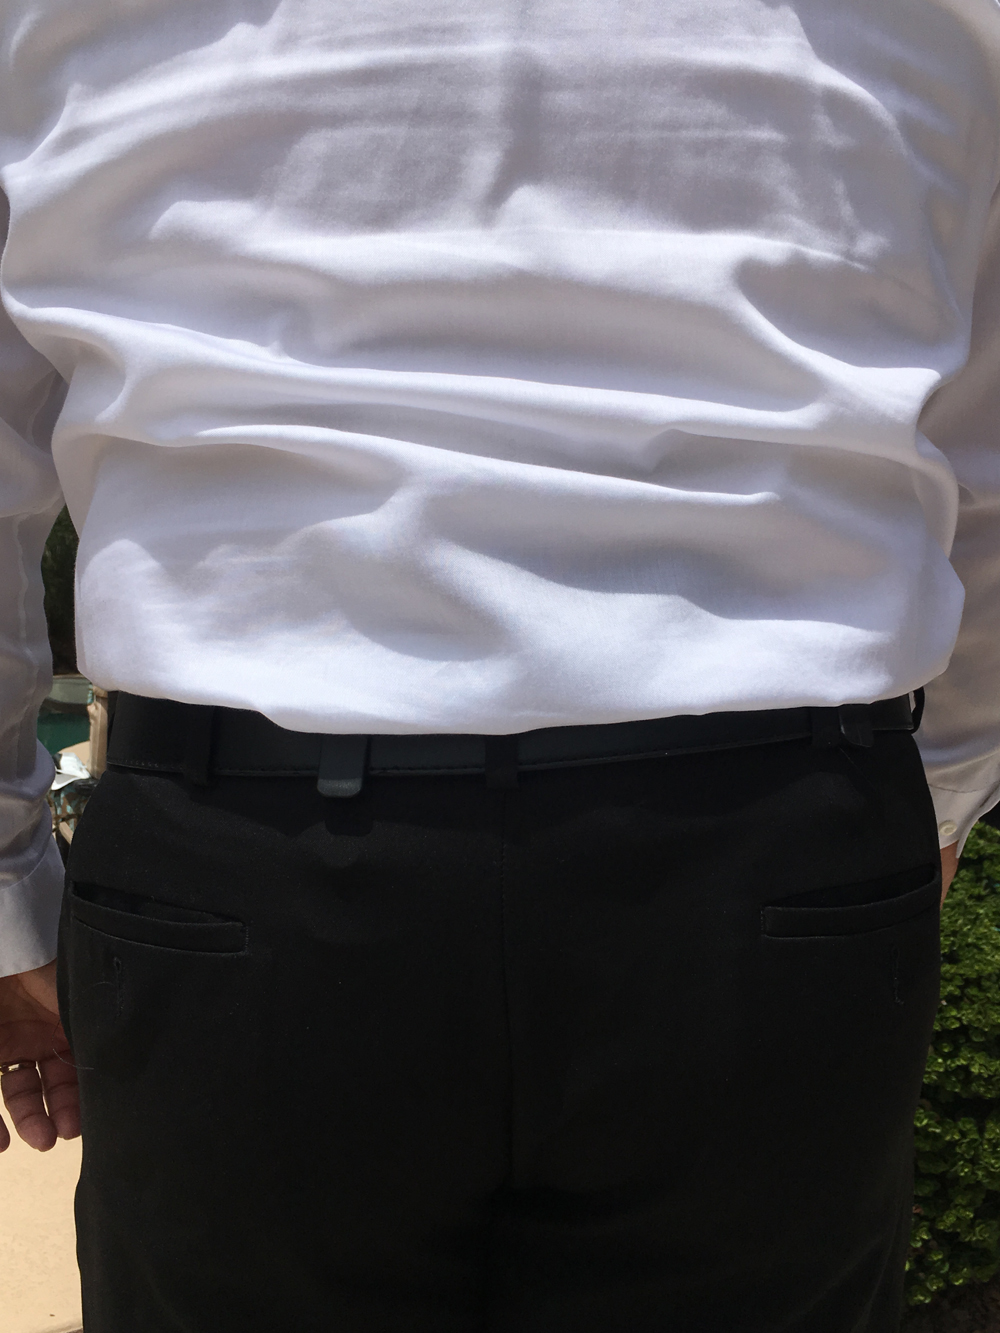 Man with concealed firearm wearing a white dress shirt